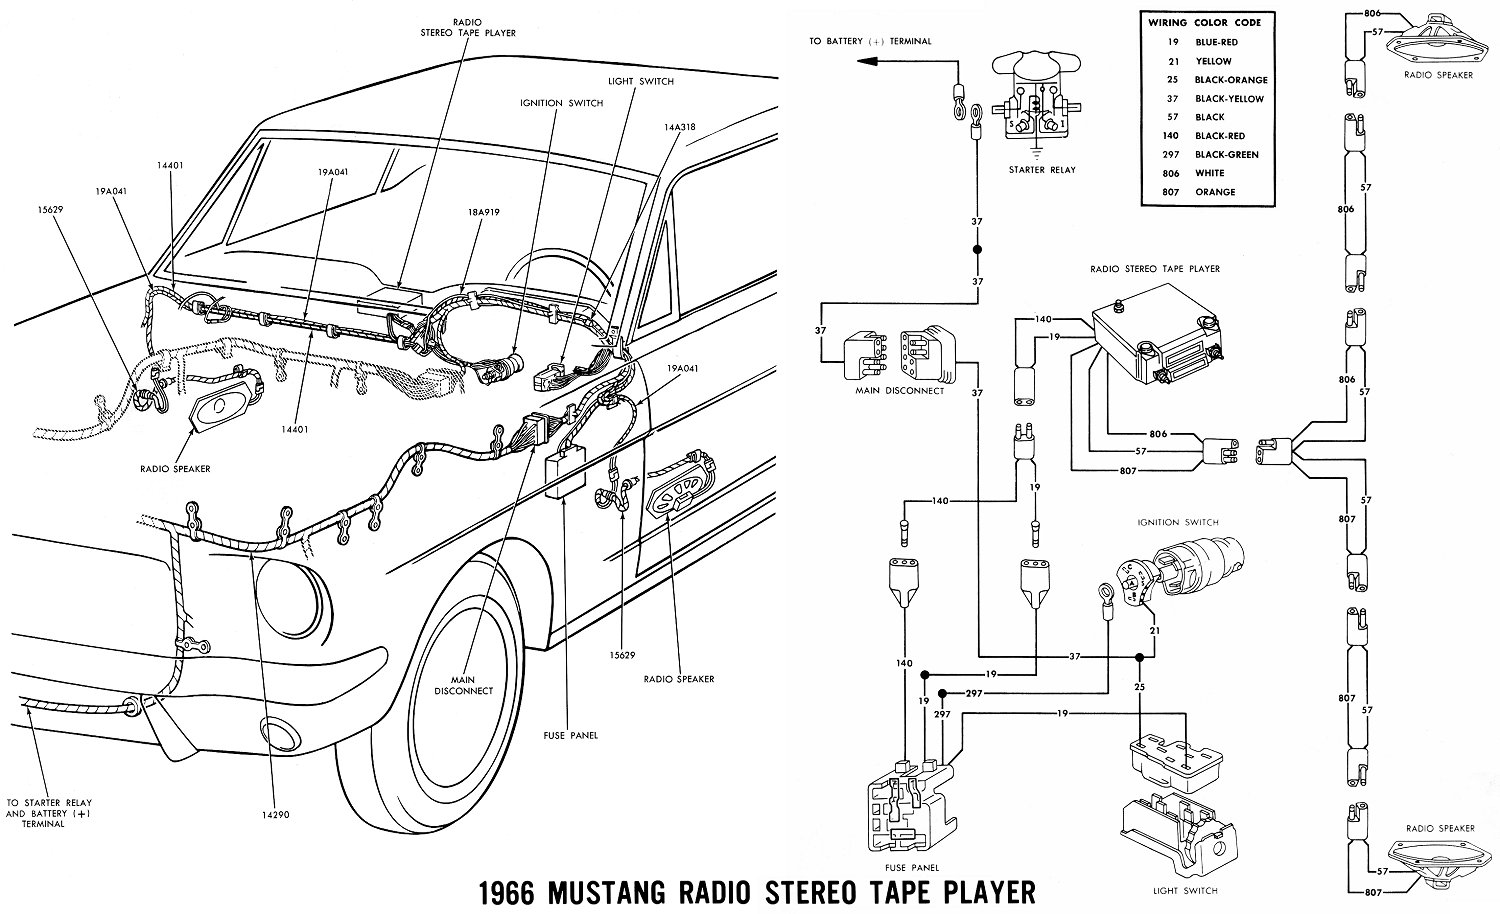 1966 mustang dash light wiring diagram pioneer deh 3200ub diagrams average joe restoration